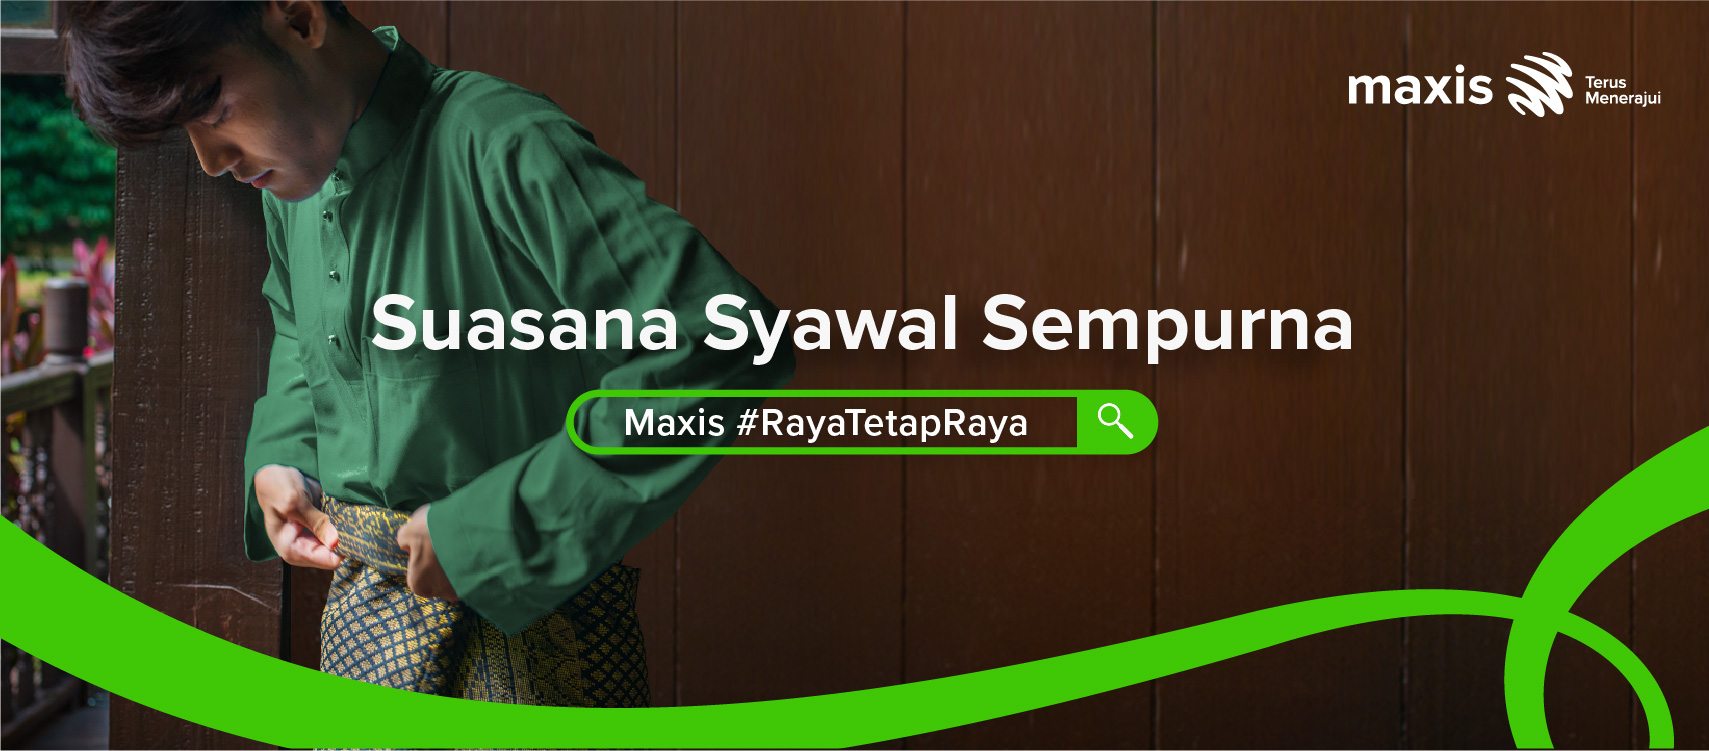 Maxis Hari Raya Campaign Launches With A Twist To Reveal The Perfect Celebration